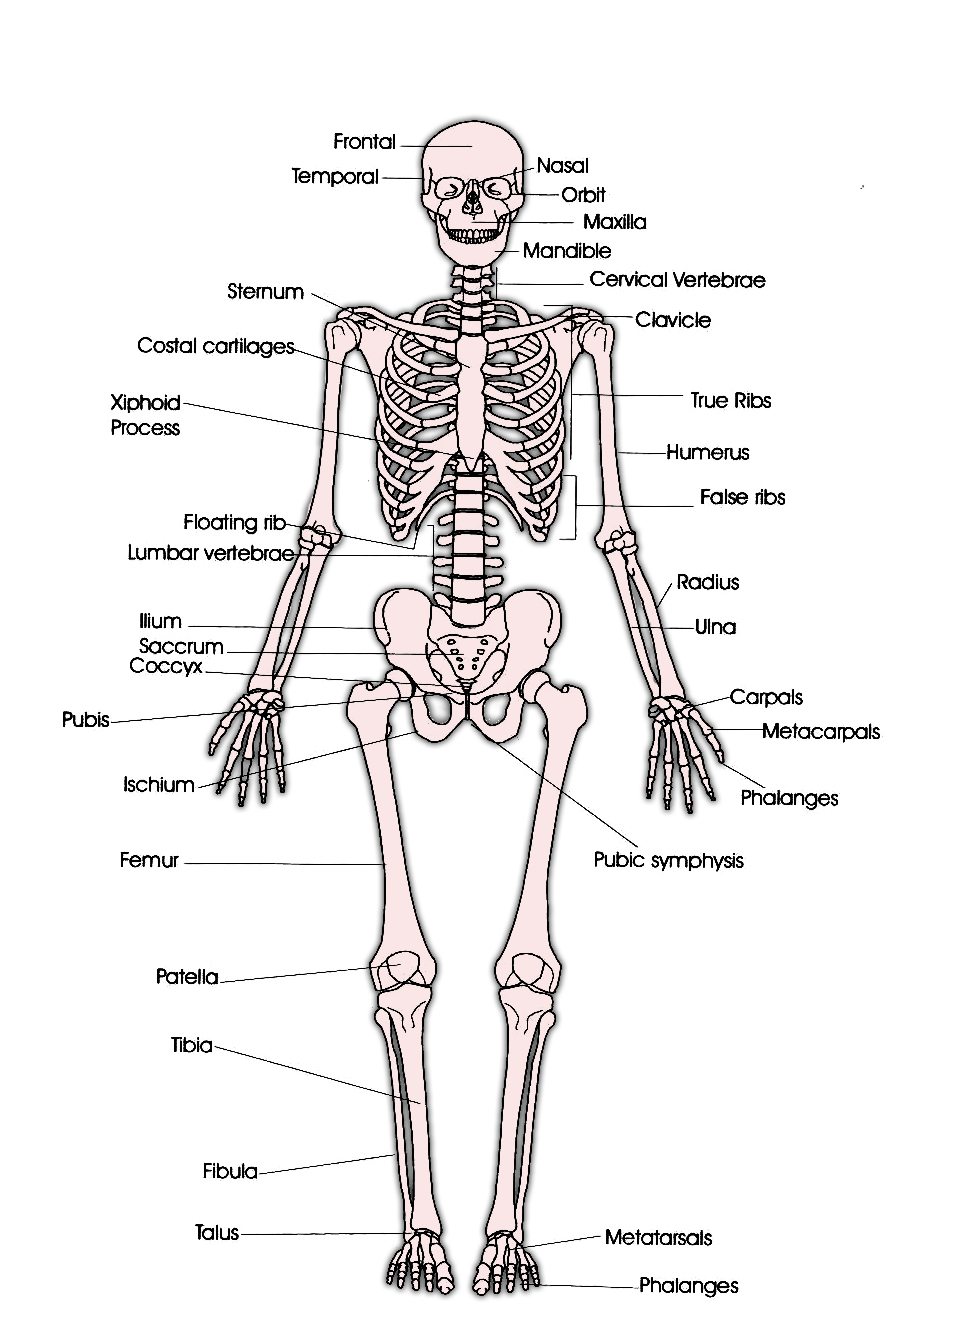 Human Skeleton Diagram Car Interior Design